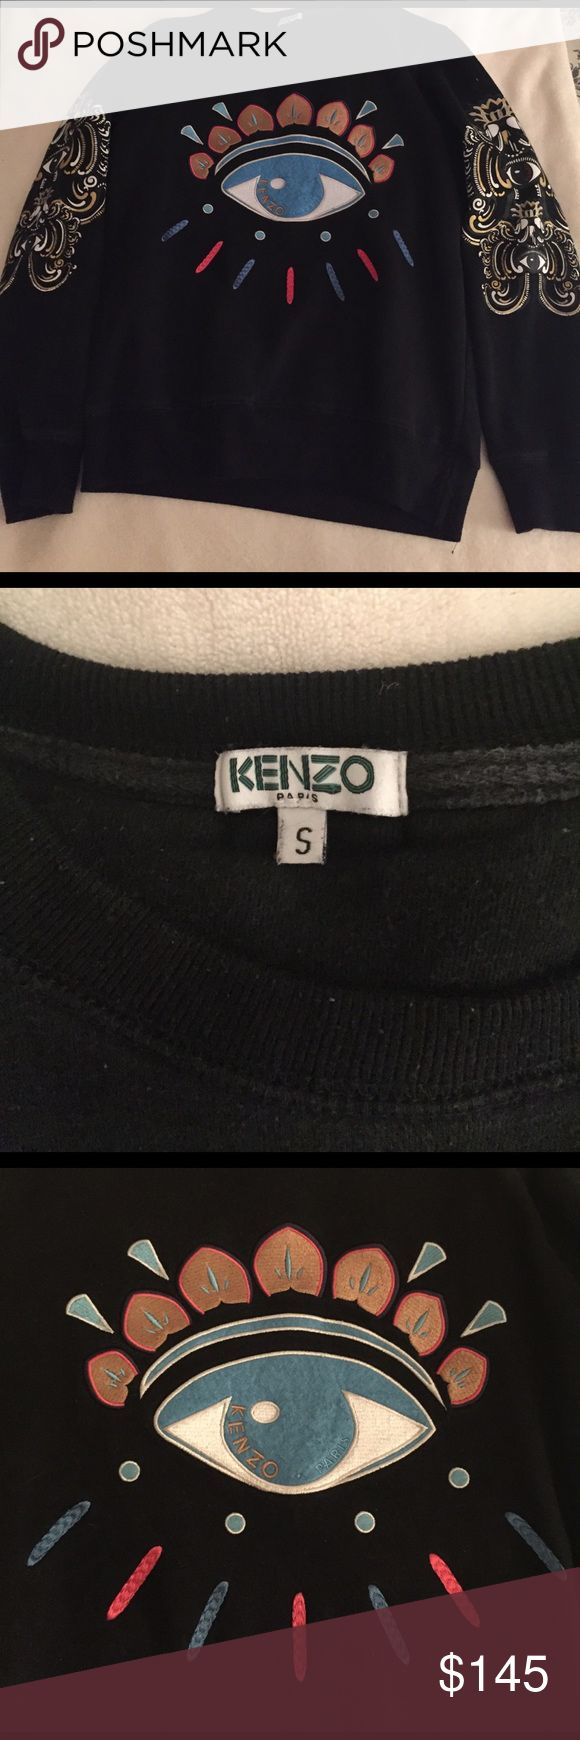 KENZO jumper Slight wear, but still great condition! Authentic. Kenzo Tops Sweatshirts & Hoodies